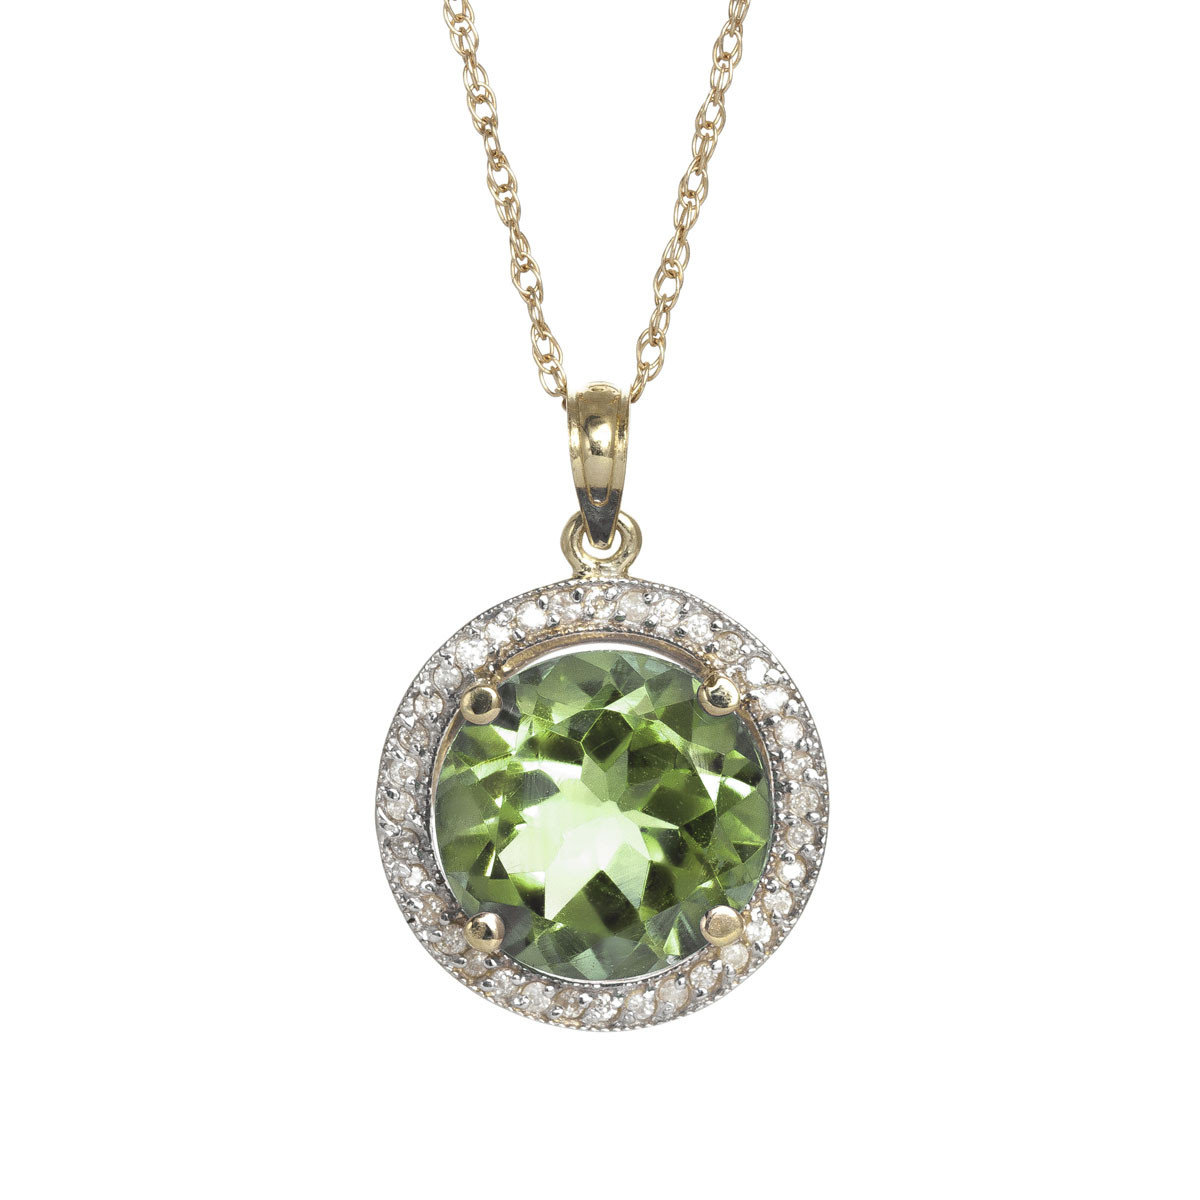 Green Amethyst Halo Pendant Necklace 5.2 ctw in 9ct Gold